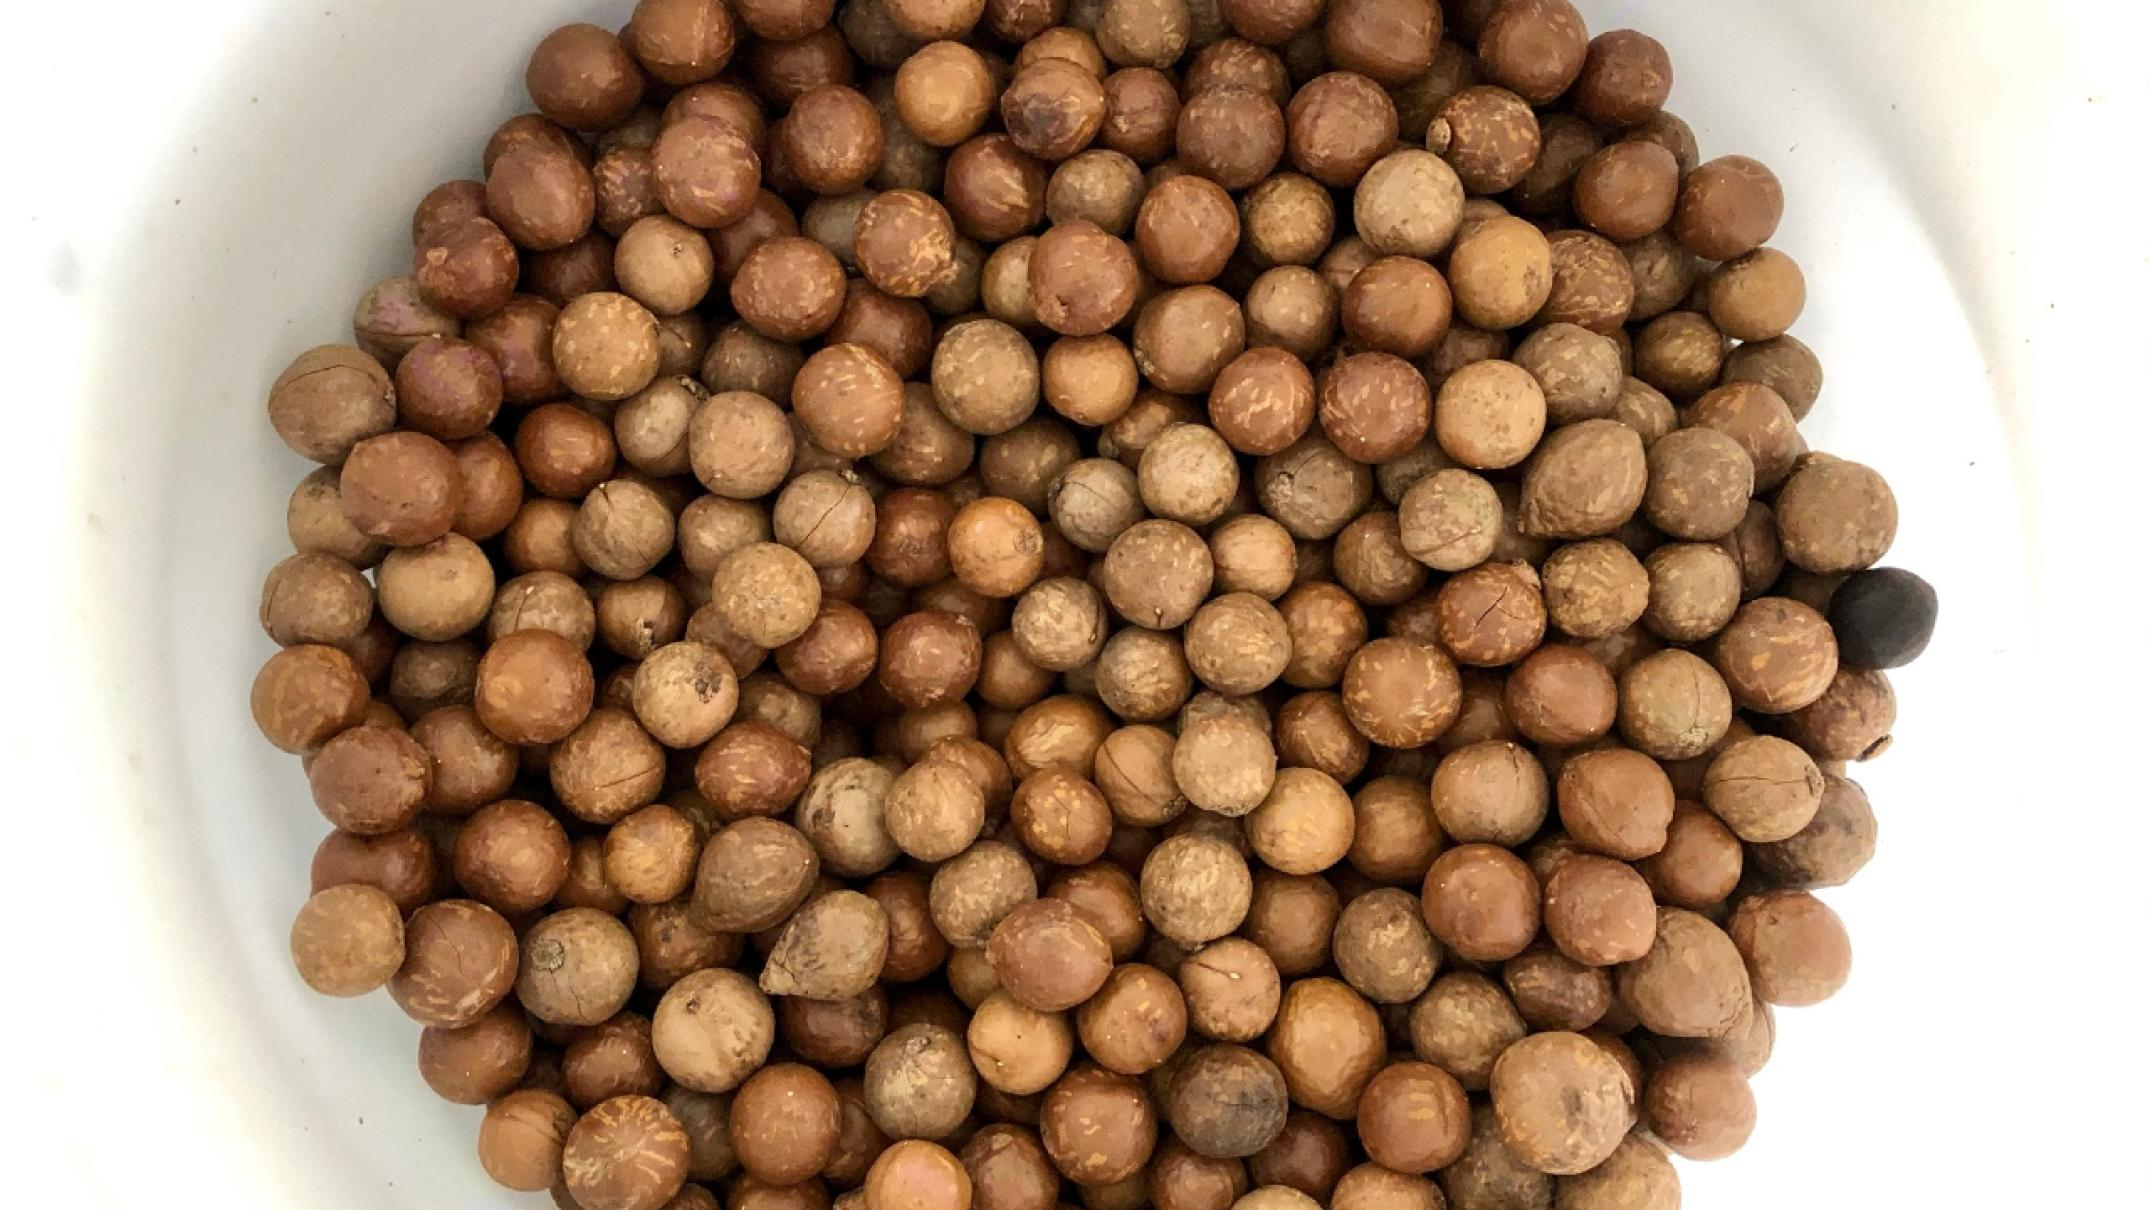 macadamias-are-tough-nuts-to-crack,-but-scientists-are-working-to-change-that